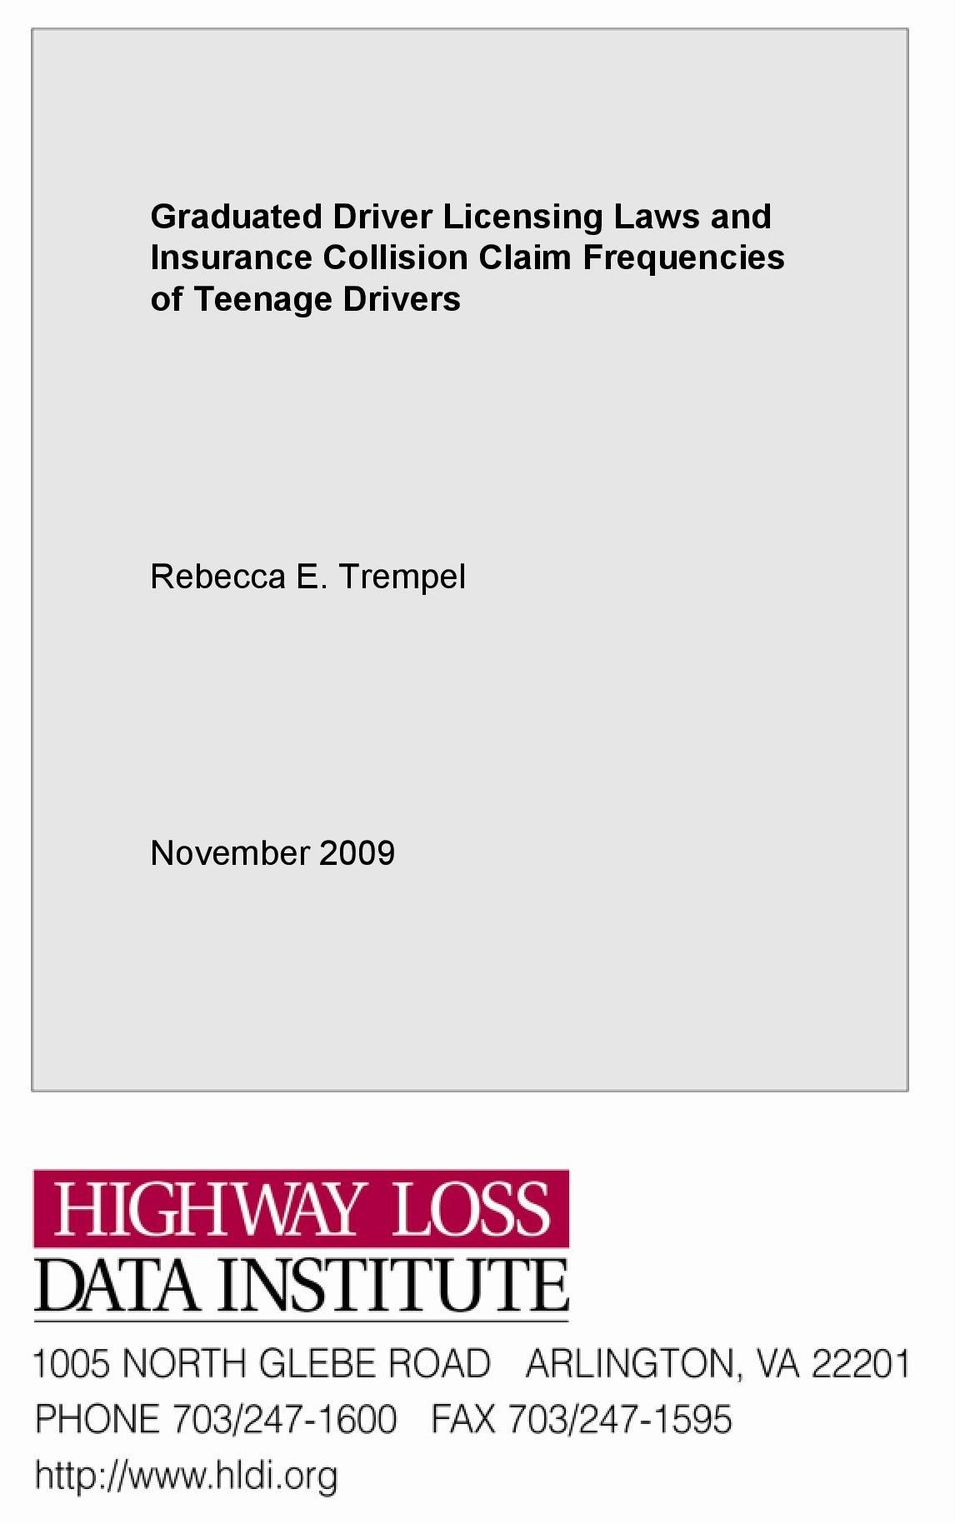 Frequencies of Teenage Drivers